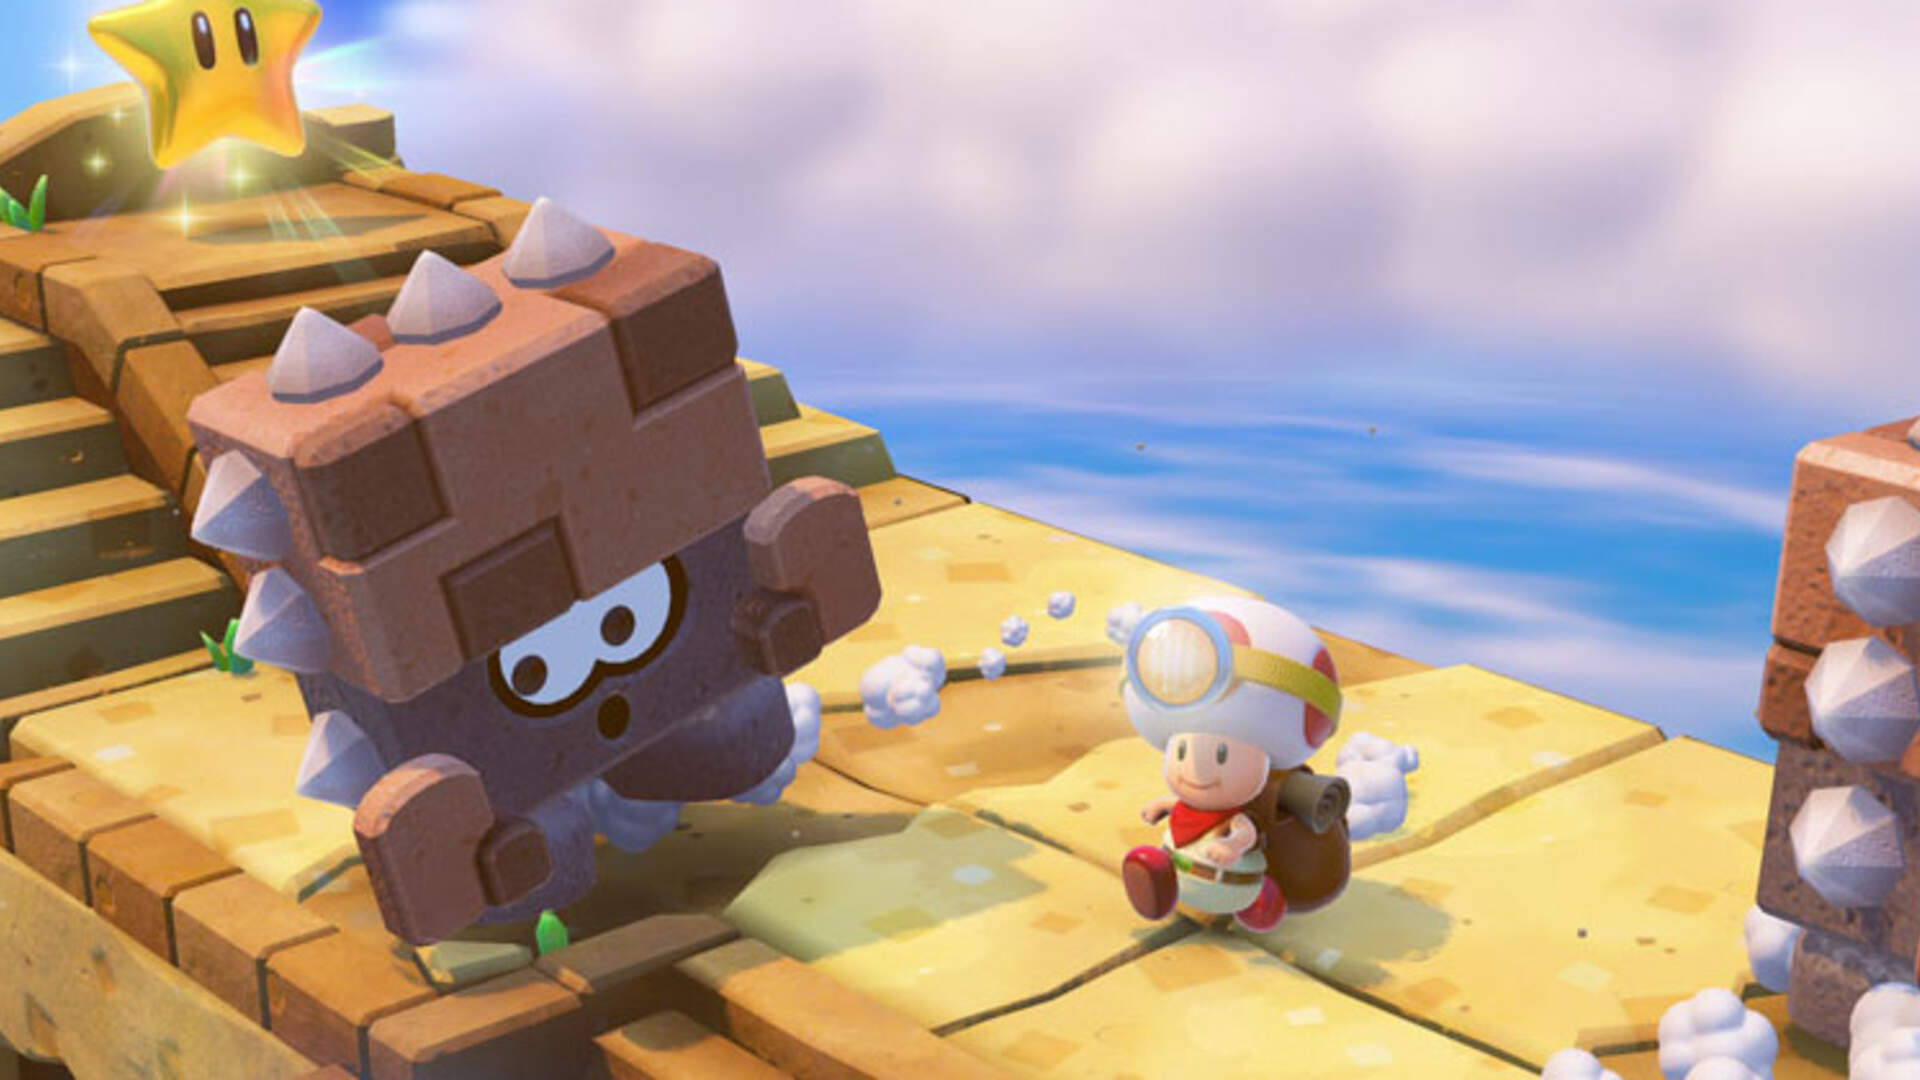 Captain Toad: Treasure Tracker Wii U Review: A Visitor from a Brighter Reality